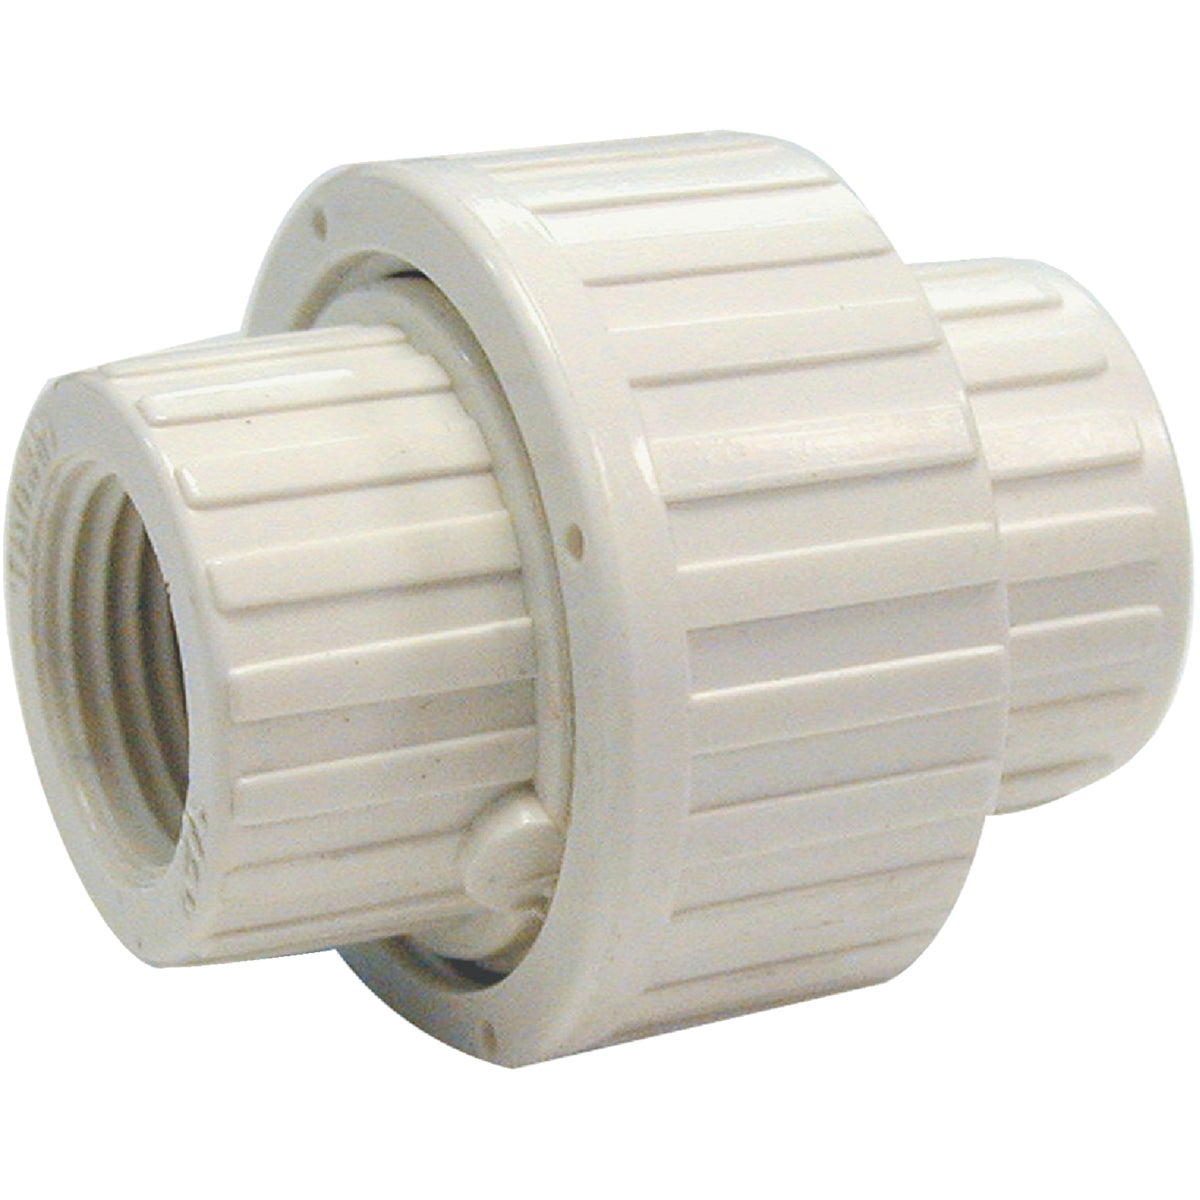 "WHT 1/2"" FIP PVC UNION - 164-133 by Mueller B K"